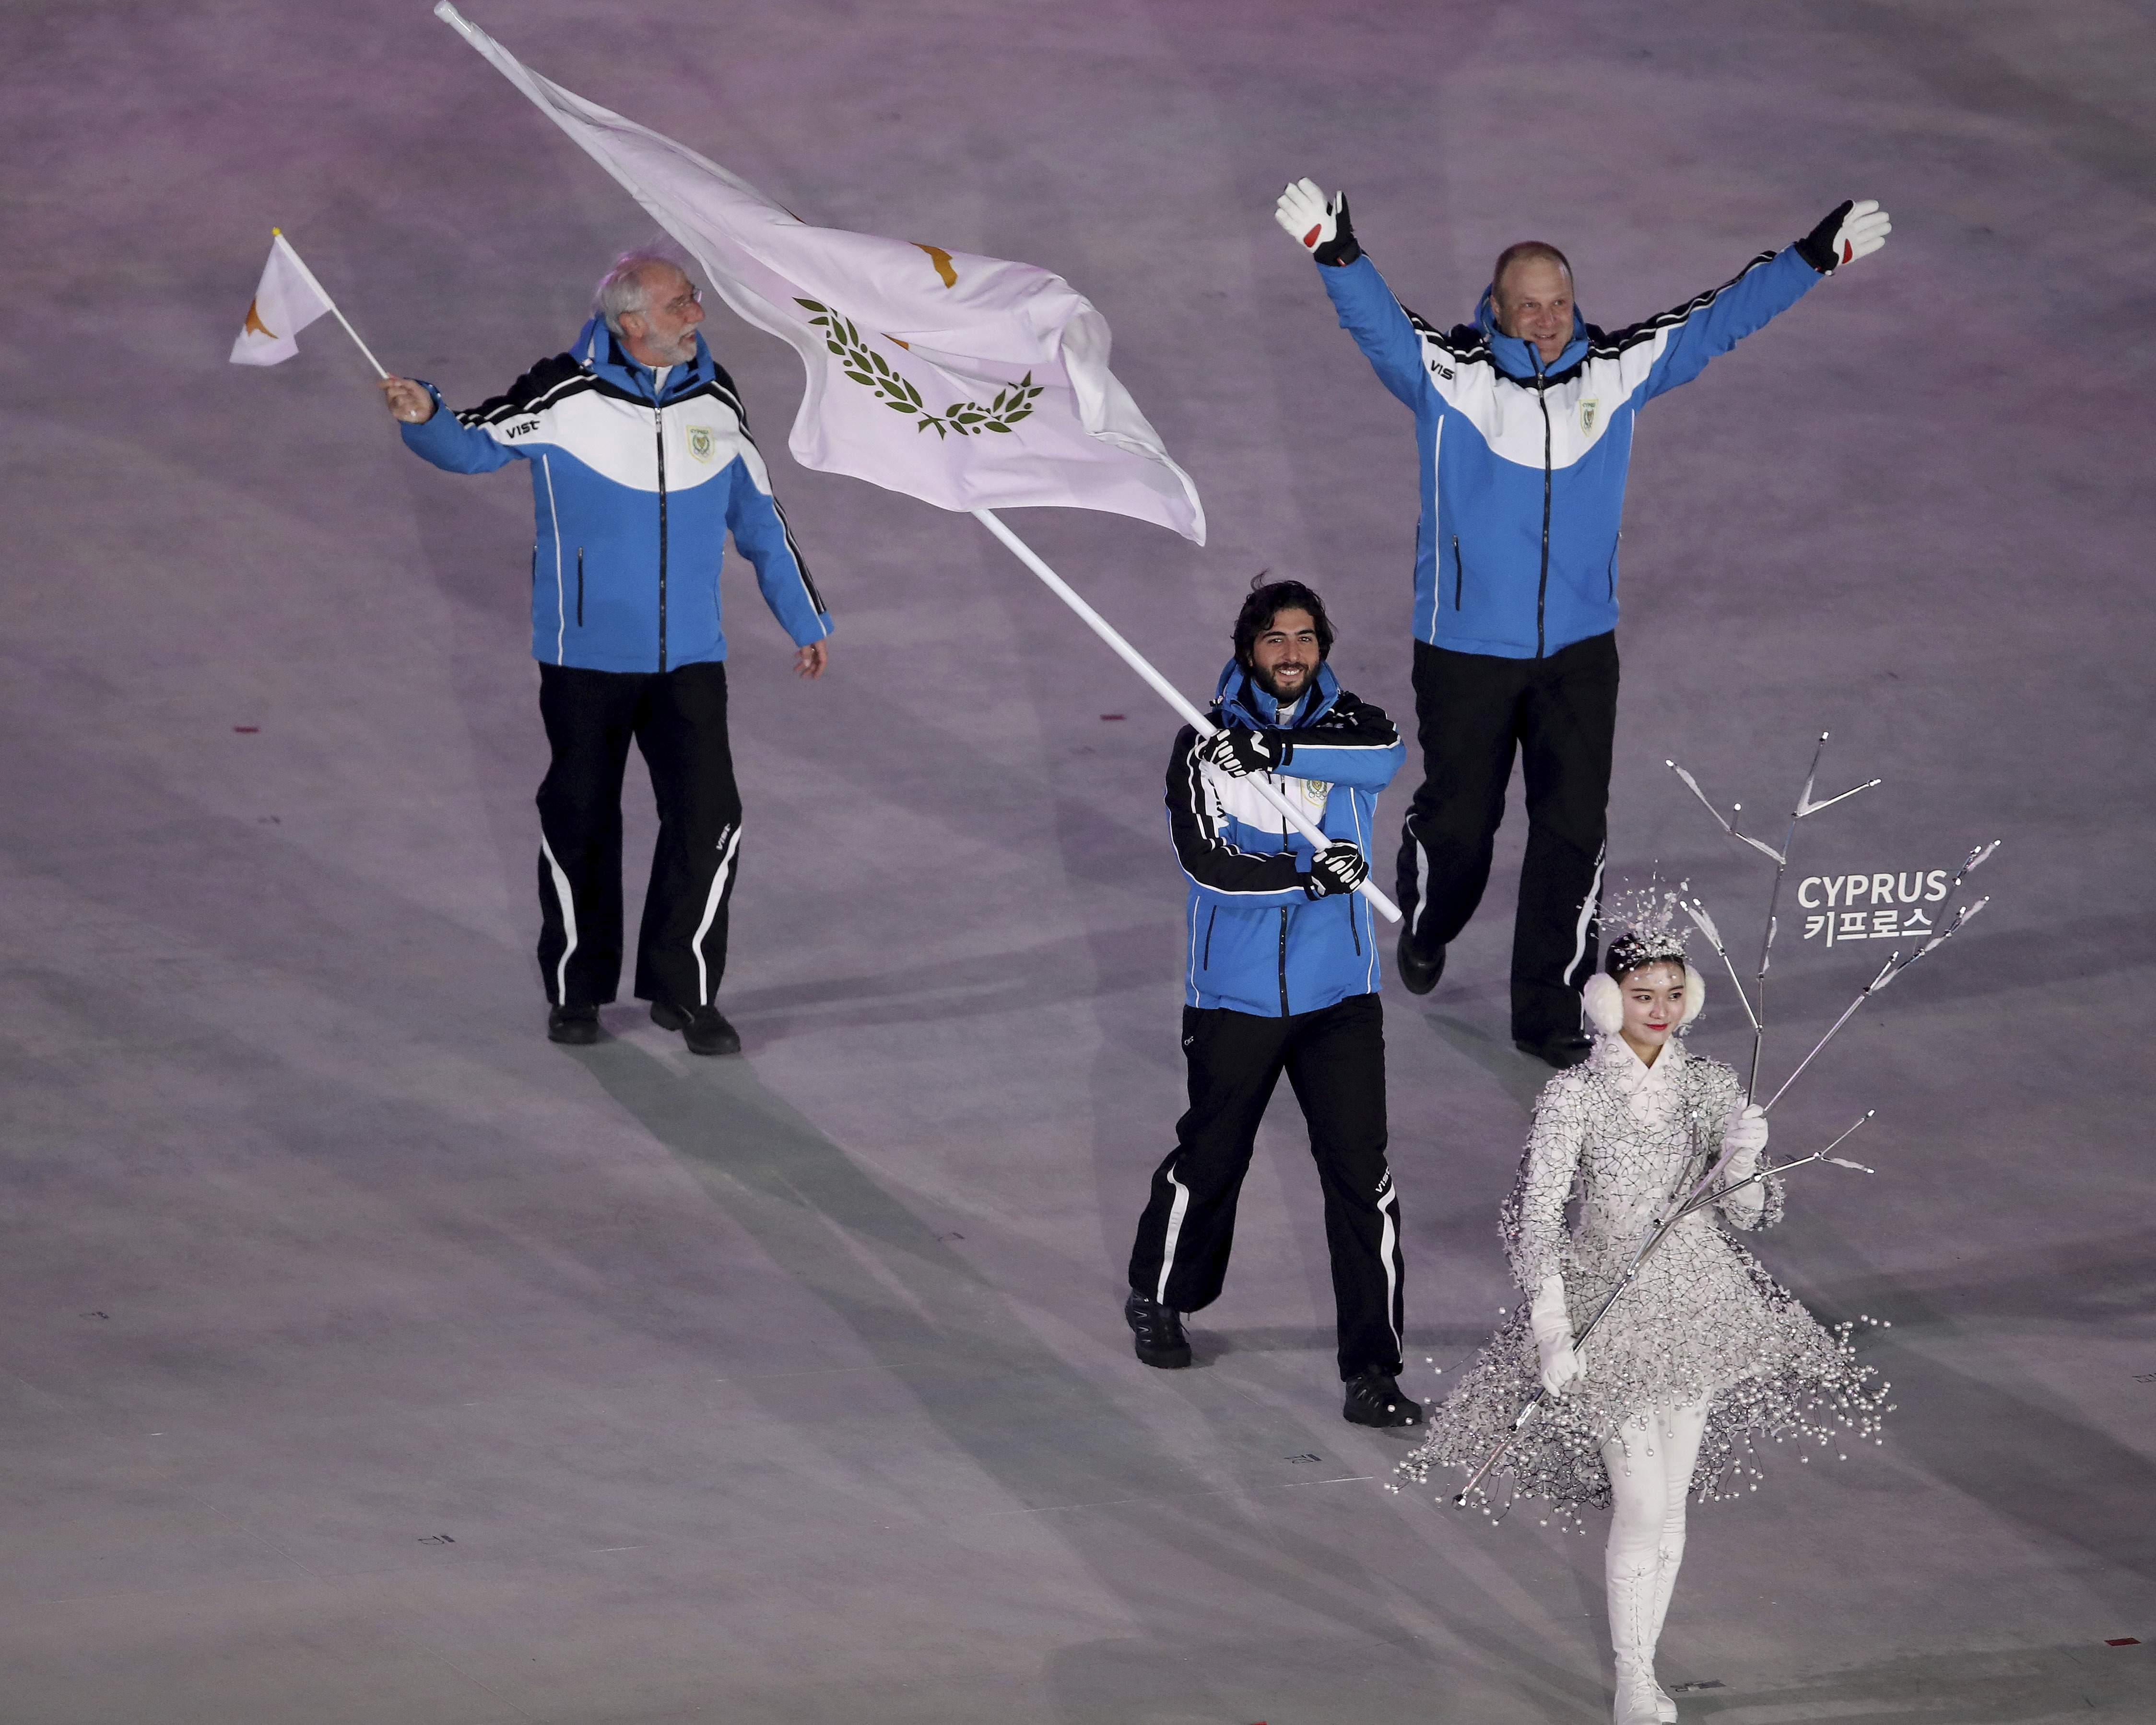 Dinos Lefkaritis carries the flag of Cyprus during the opening ceremony of the 2018 Winter Olympics in Pyeongchang, South Korea, Friday, Feb. 9, 2018. (Sean Haffey/Pool Photo via AP)